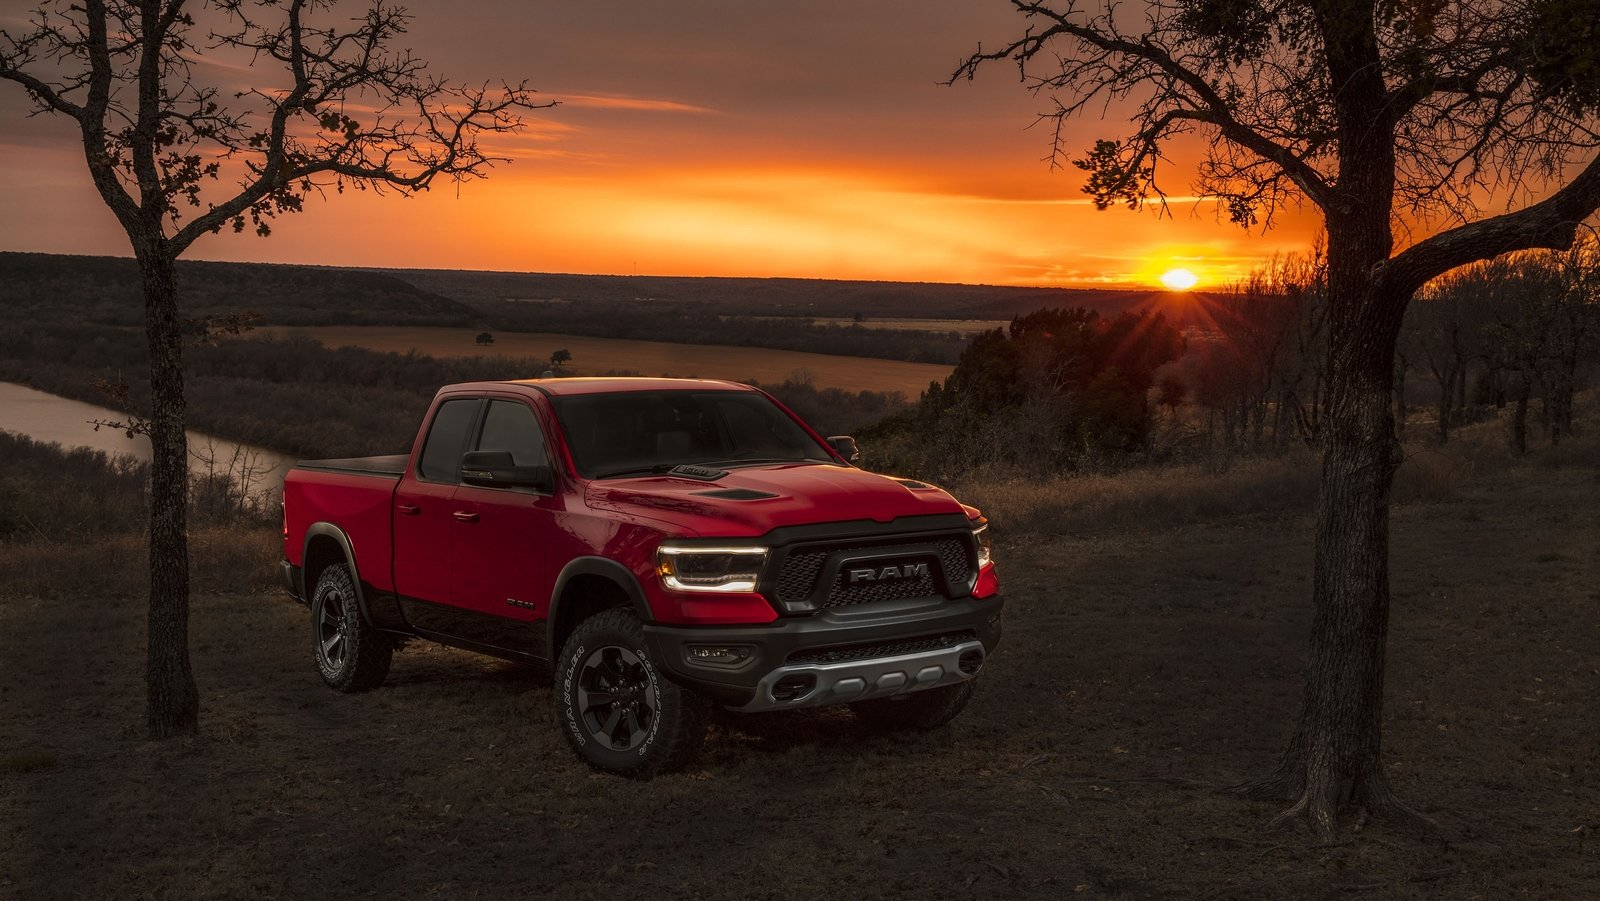 New Chevy Trucks >> Wallpaper Of The Day: 2019 Ram 1500 | Top Speed